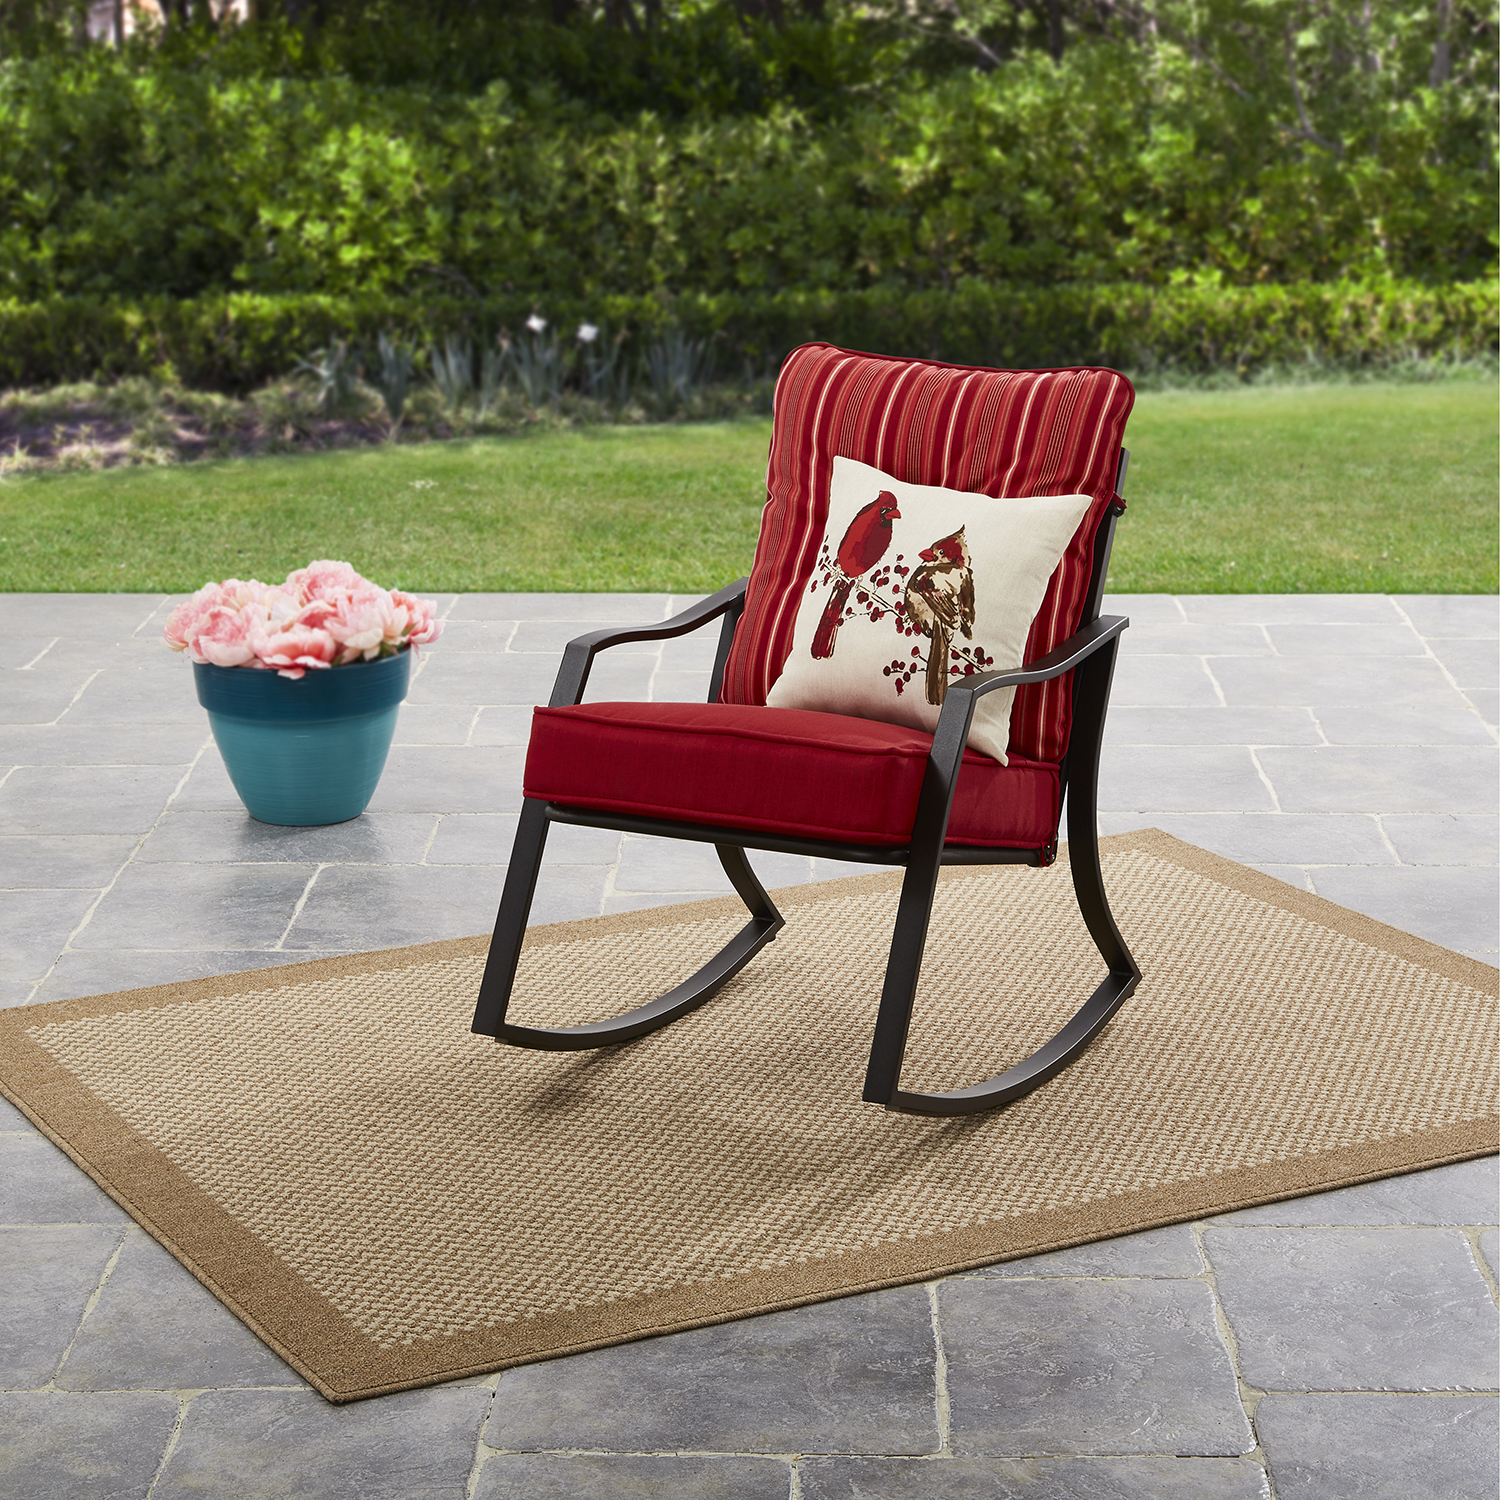 Mainstays Forest Hills Outdoor Rocking Chair - Reversible Red/Stripe